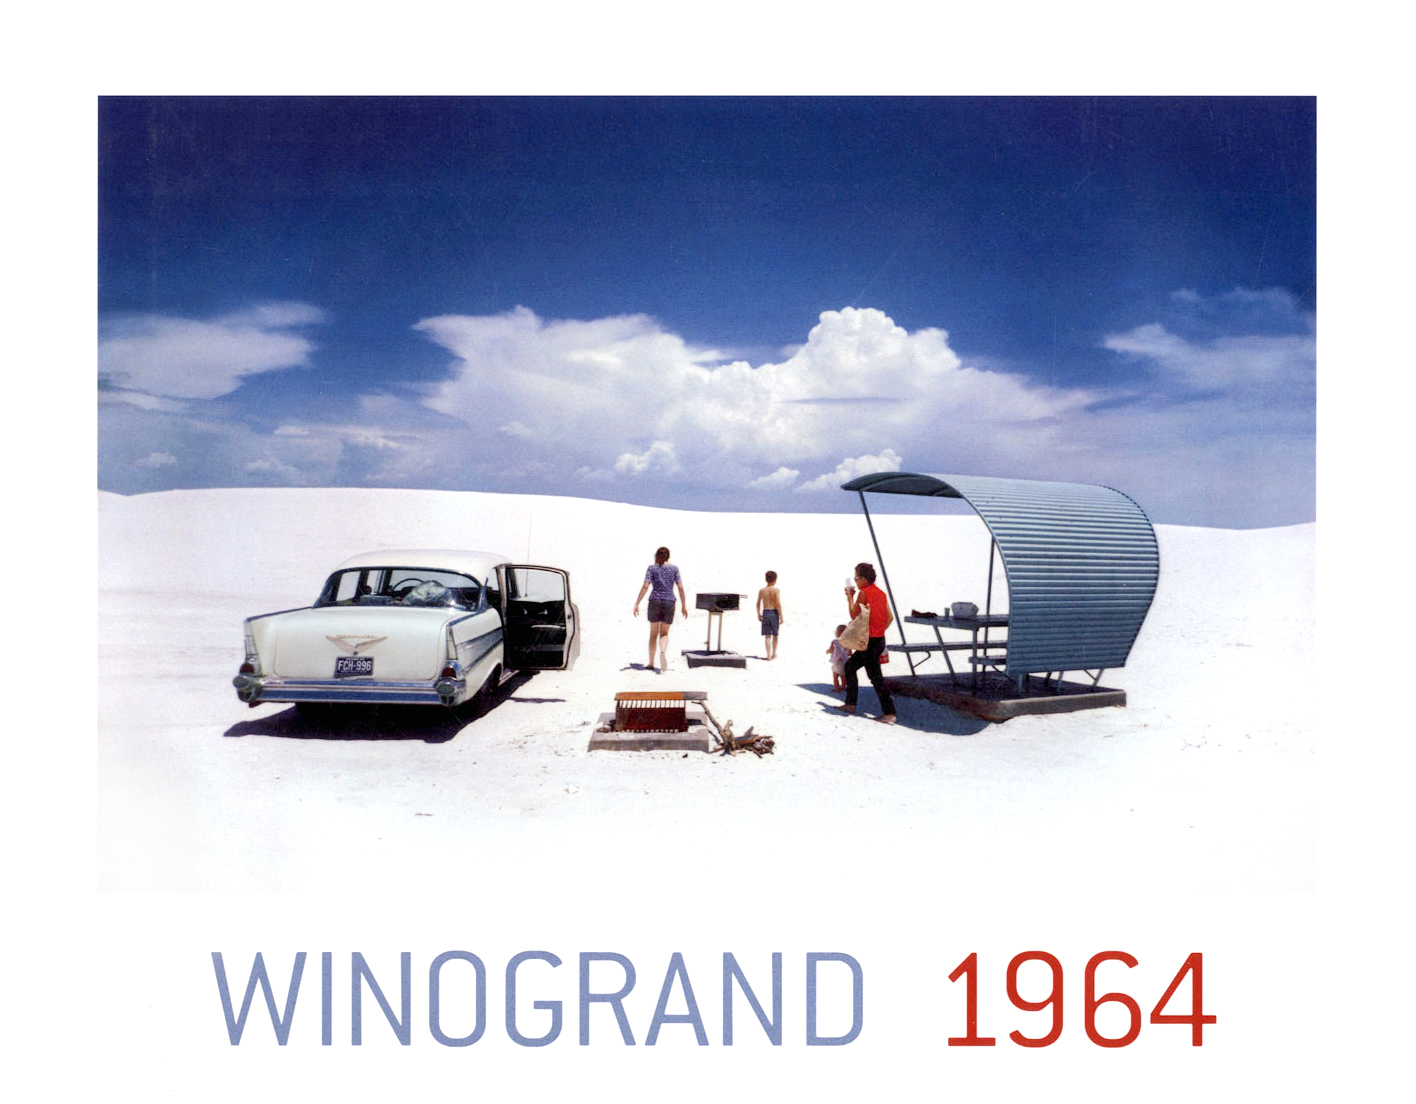 winogrand-1964-cover_1400.jpg